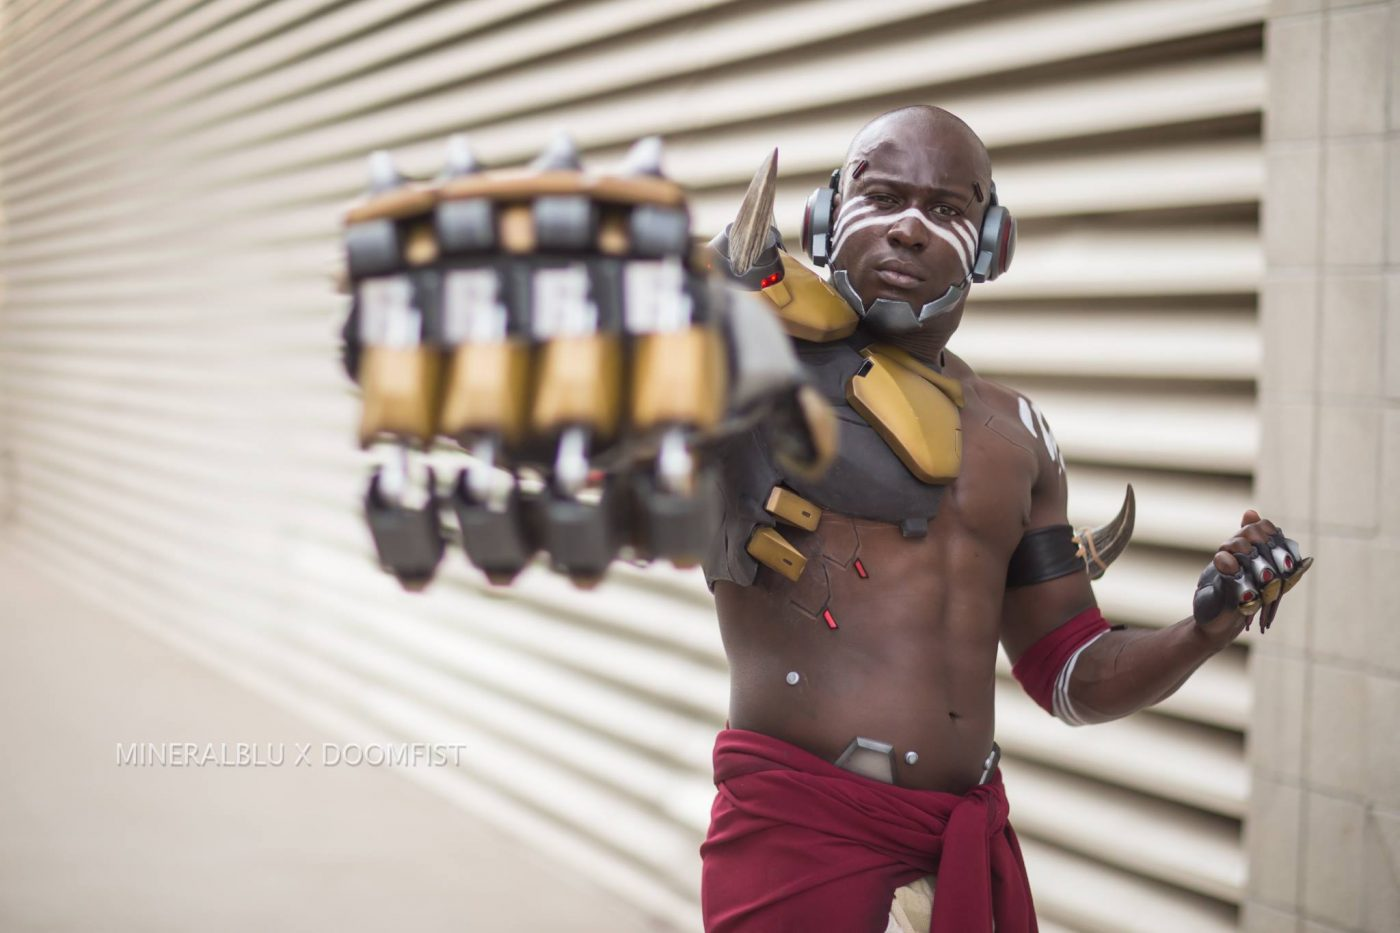 Blizzard unveils amazing, official Doomfist 'Overwatch' cosplay at SDCC '17